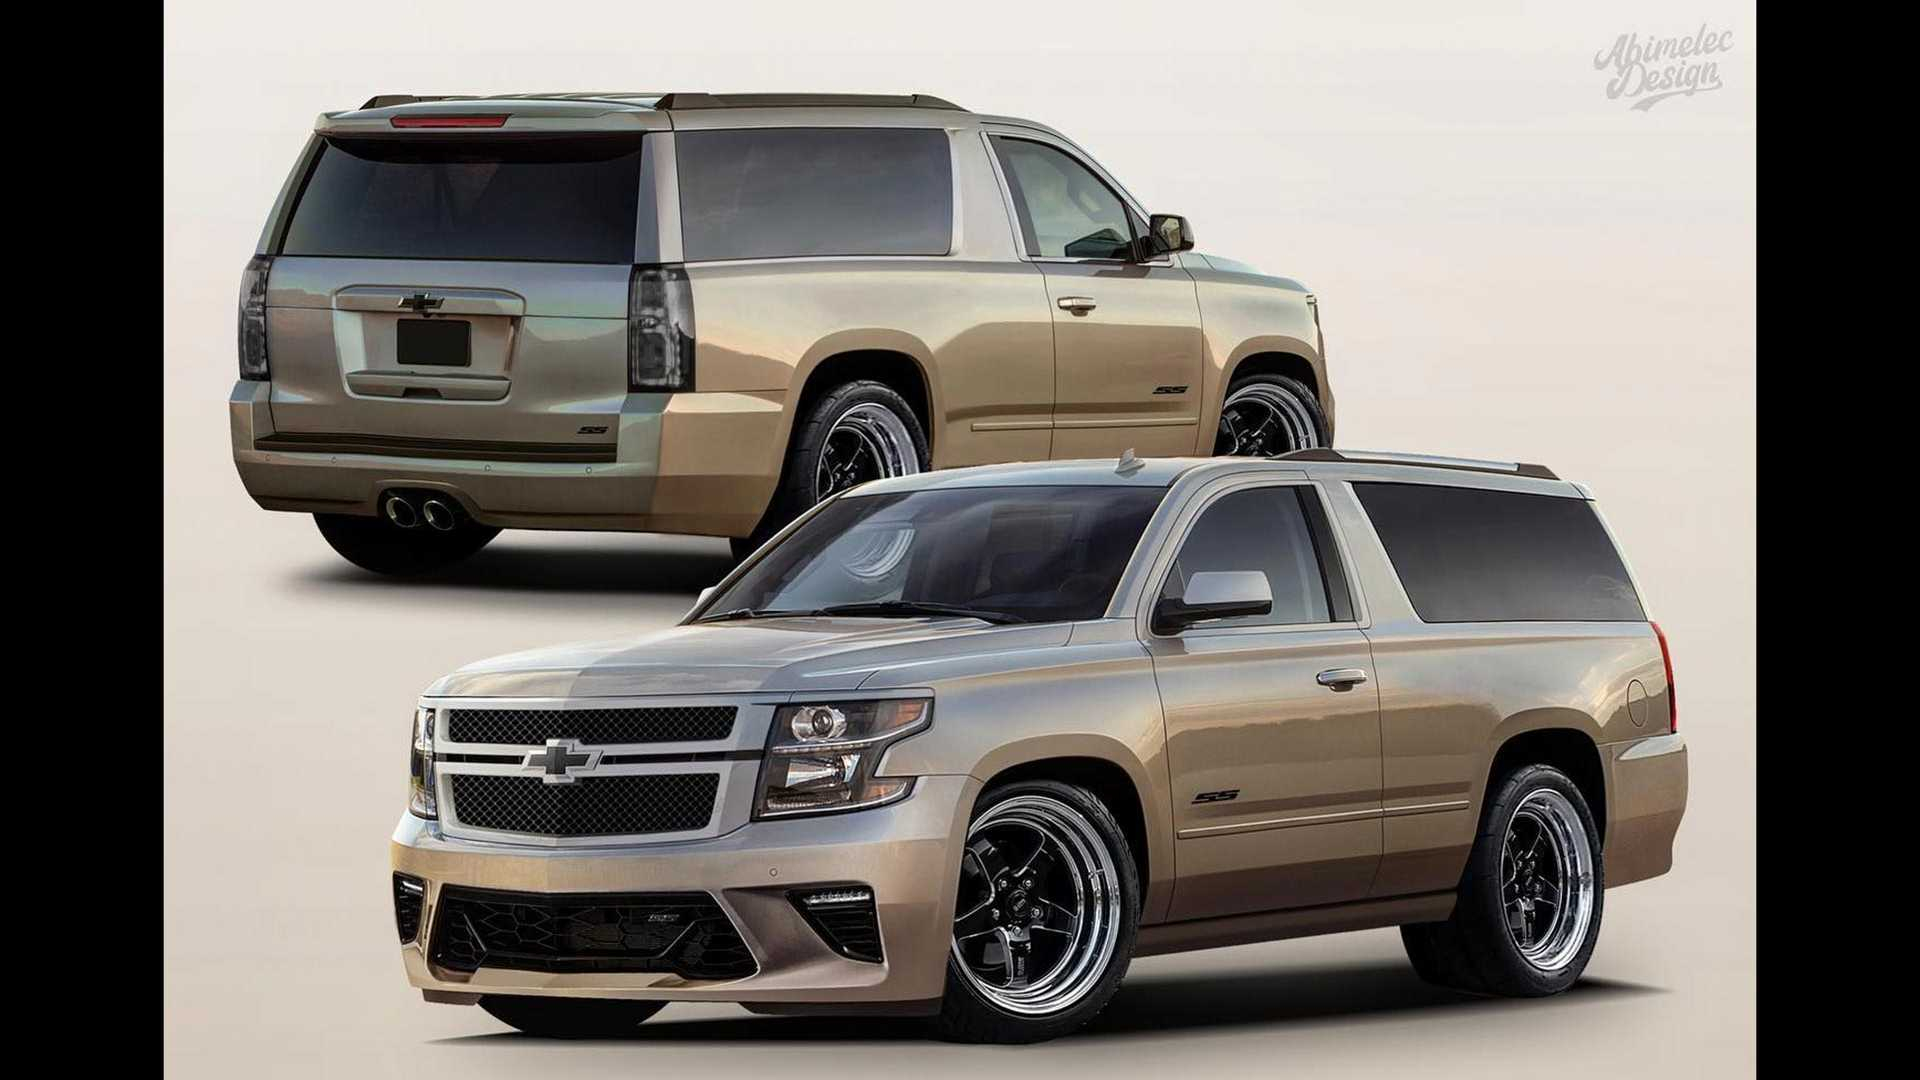 Chevy Tahoe Ss Two-Door Rendered, Might Come Into Real World 2022 Chevy Tahoe Curb Weight, Cost, Dimensions